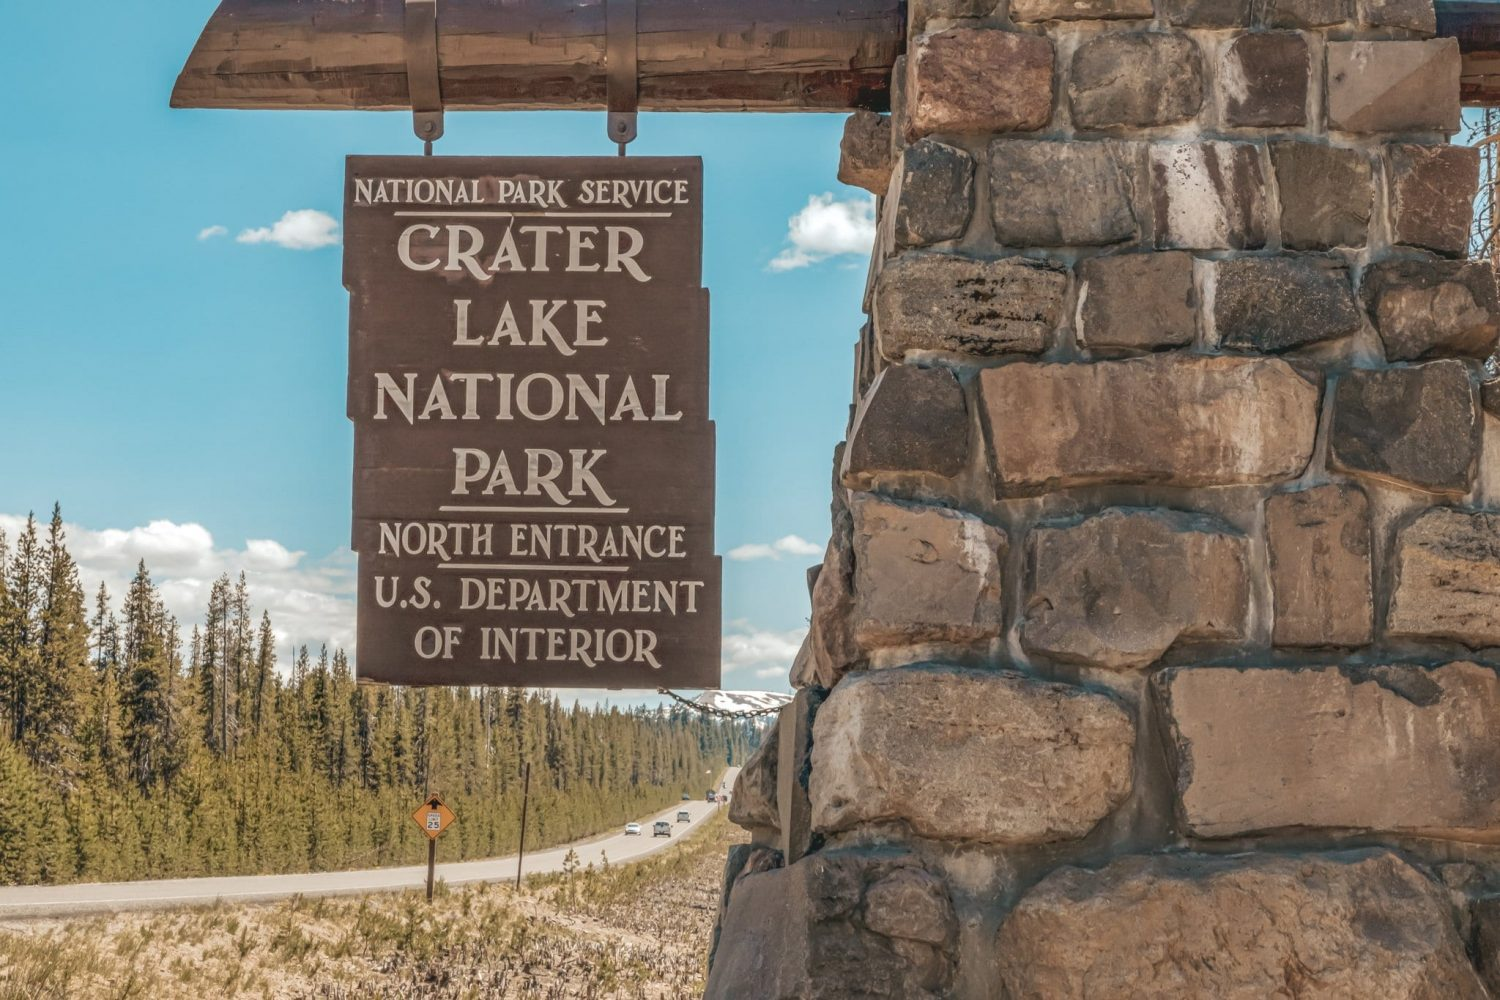 Crate Lake National Park north entrance sign located at entrance to the park